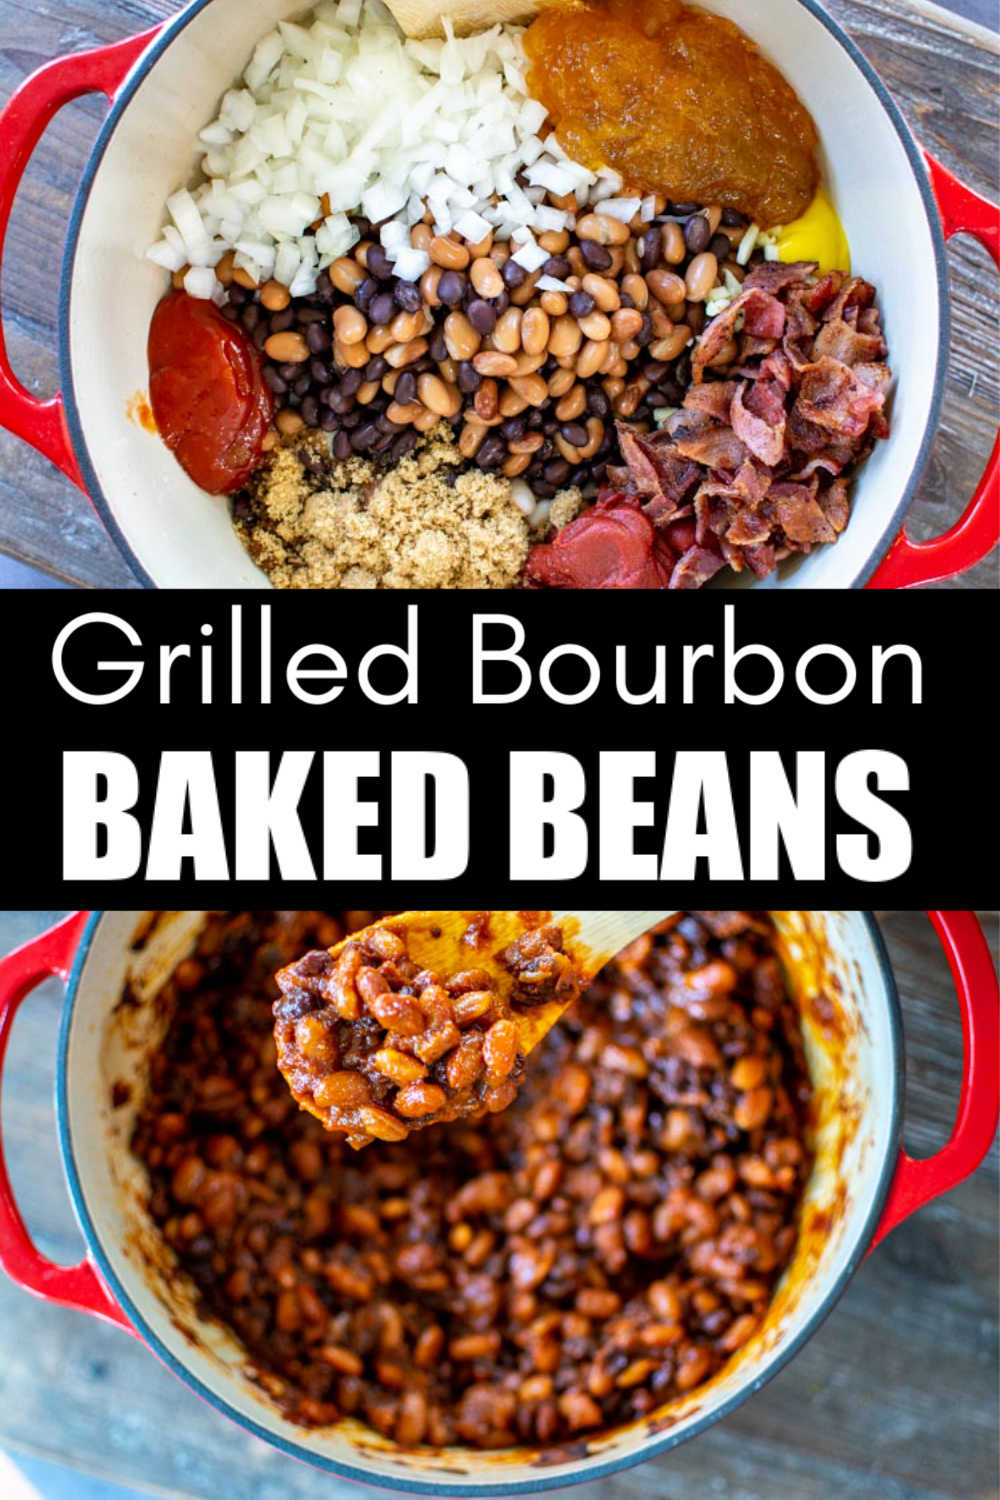 Grilled Bourbon Peach Baked Beans